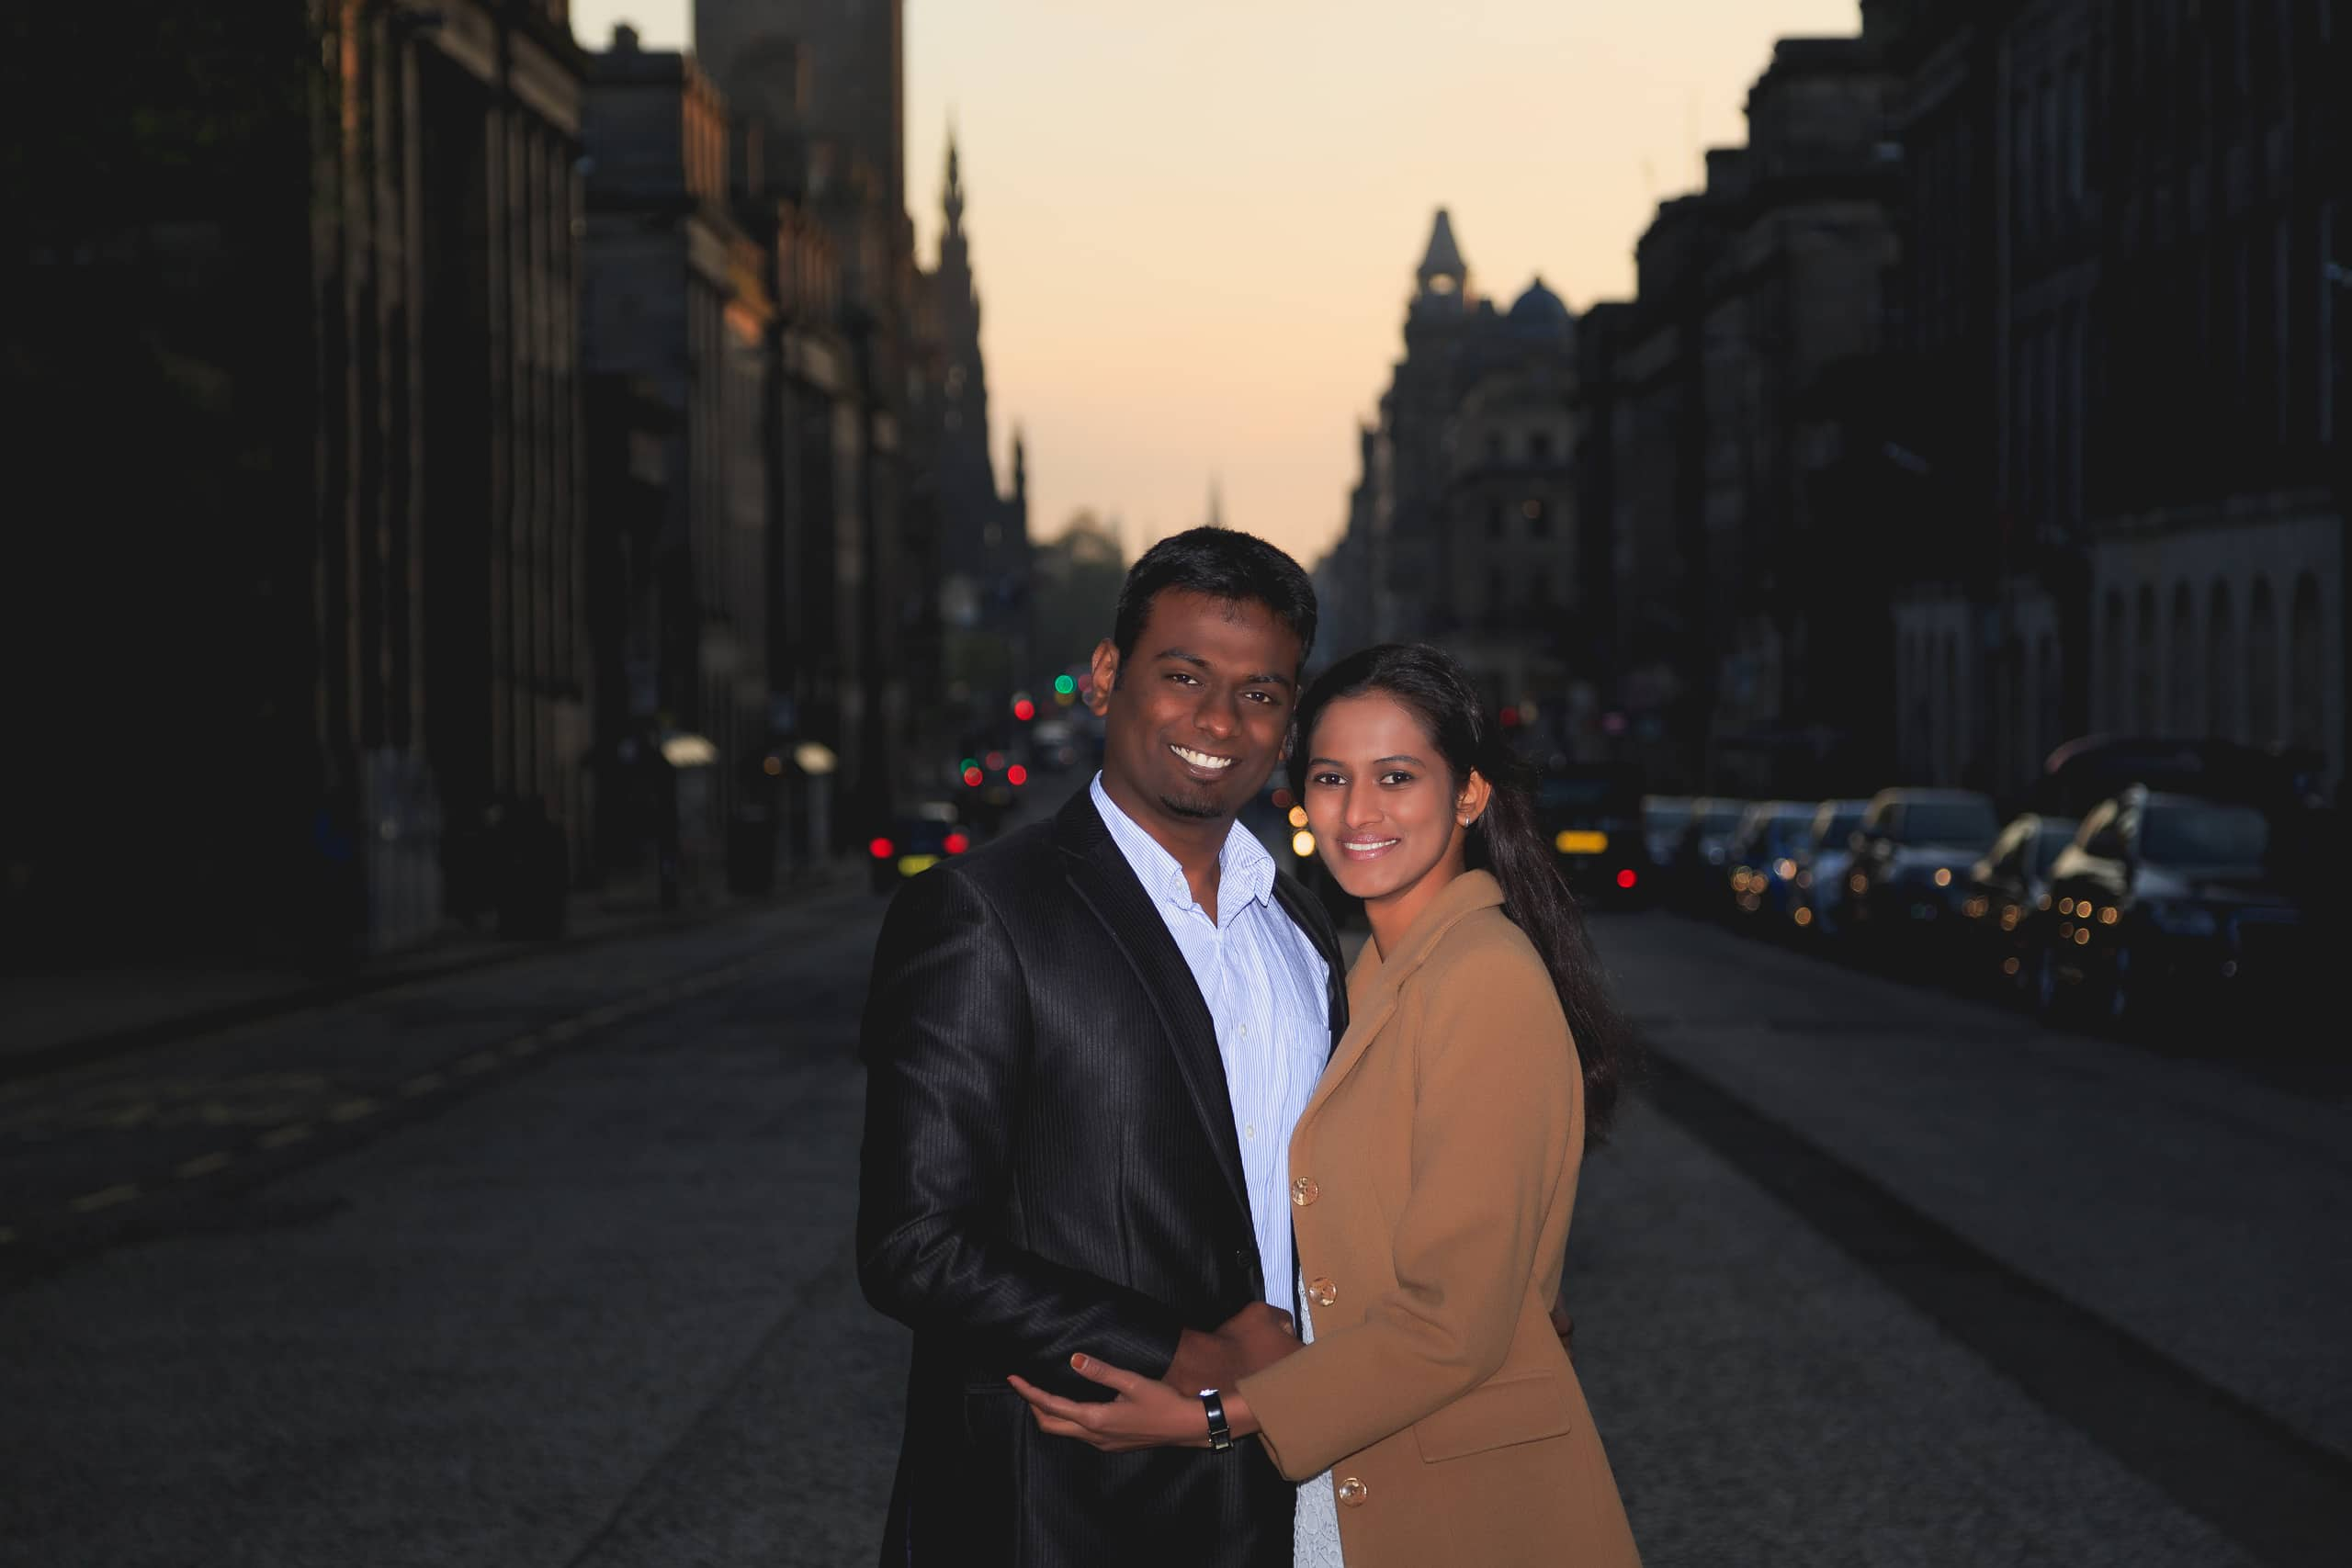 nice portrait of the couple on princess street Edinburgh